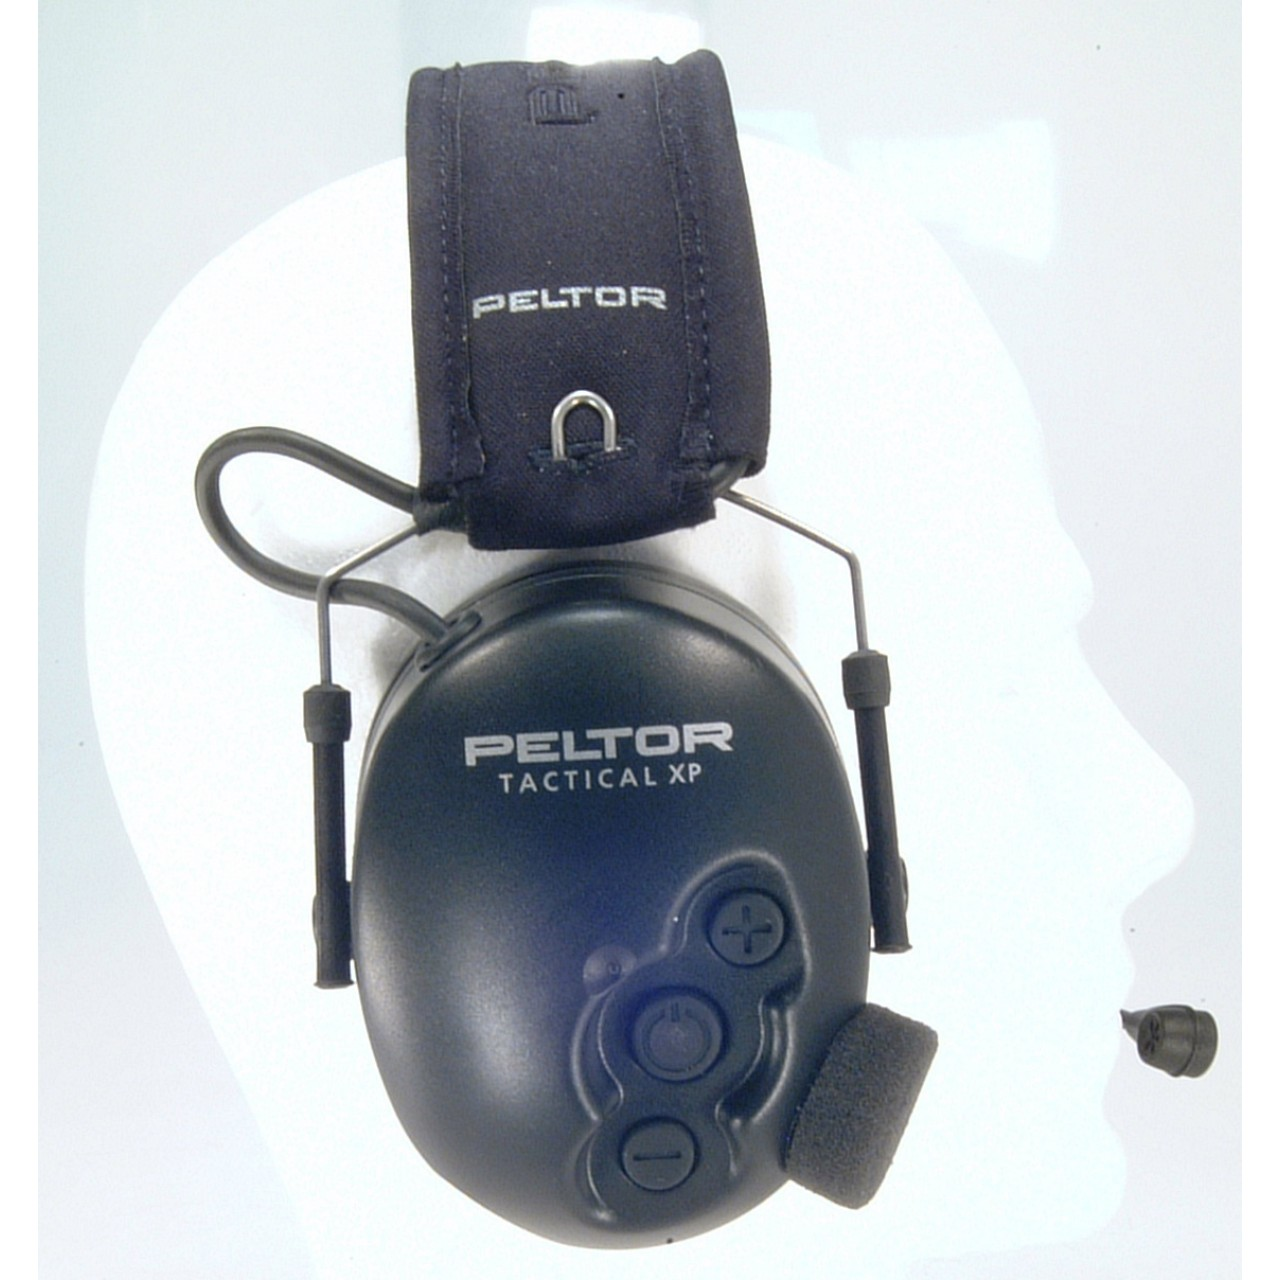 HS-PEACST Headsets and earphones - ICOM